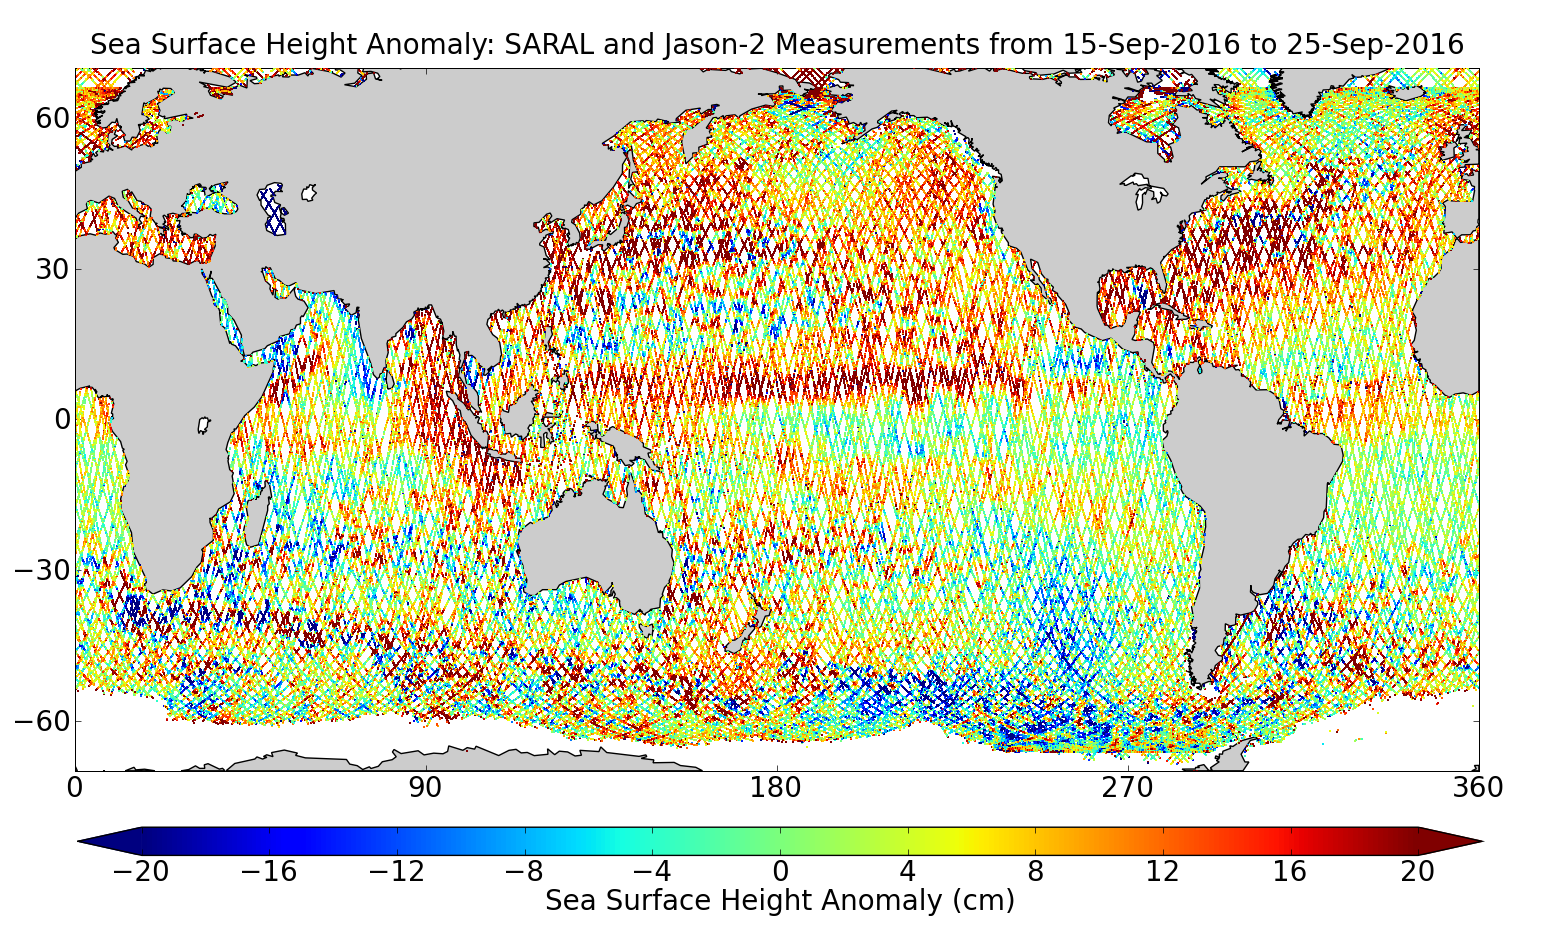 Sea Surface Height Anomaly: SARAL and Jason-2 Measurements from 15-Sep-2016 to 25-Sep-2016